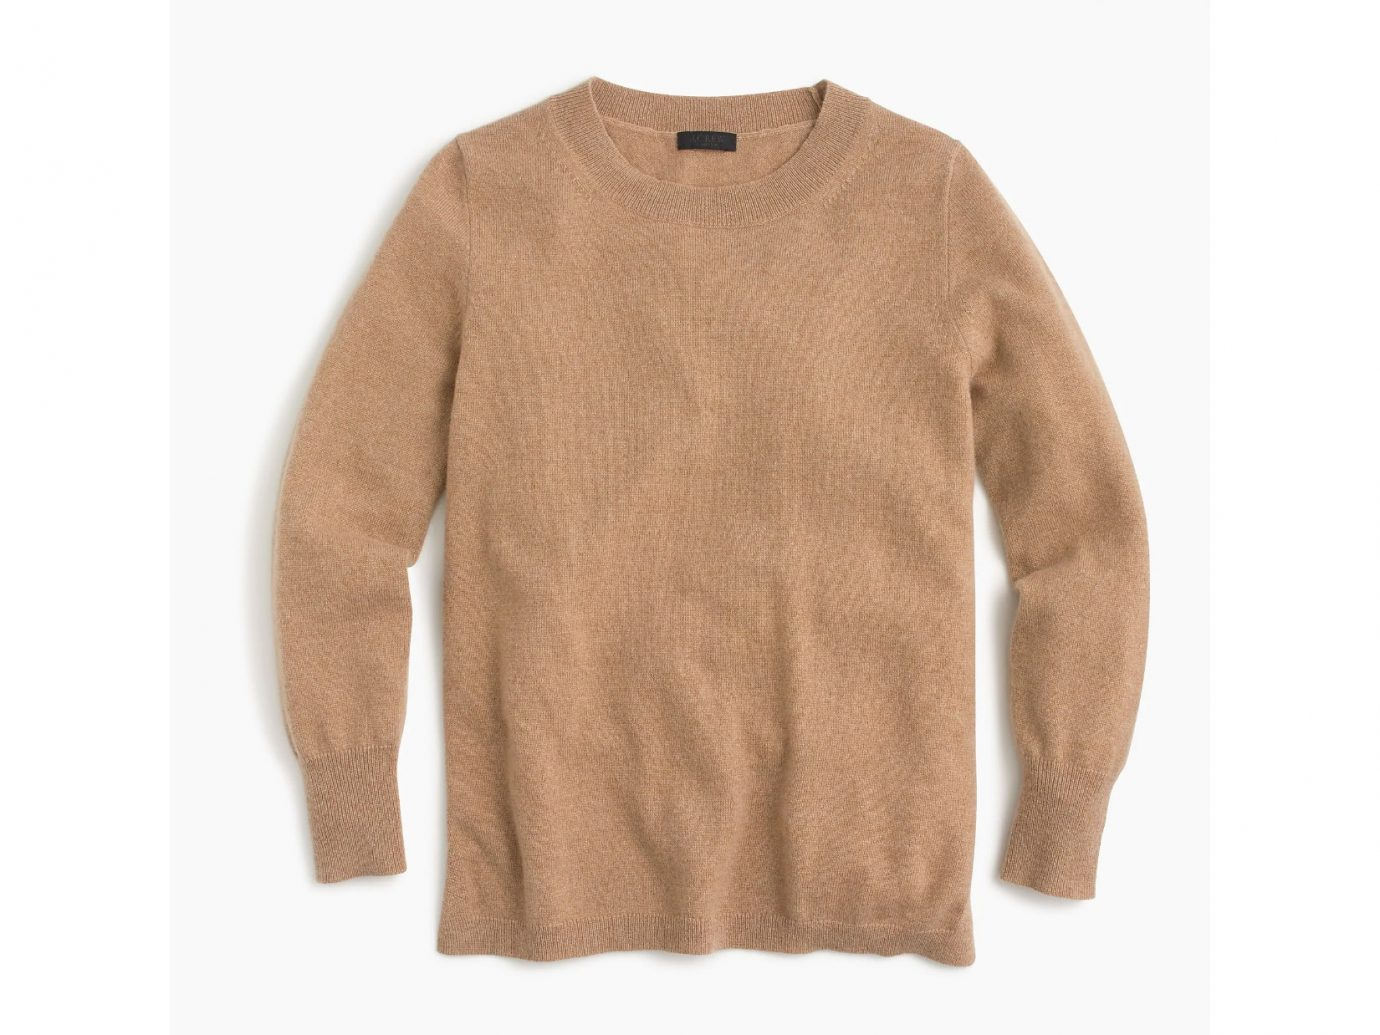 J. Crew three-quarter sleeve everyday cashmere crewneck sweater